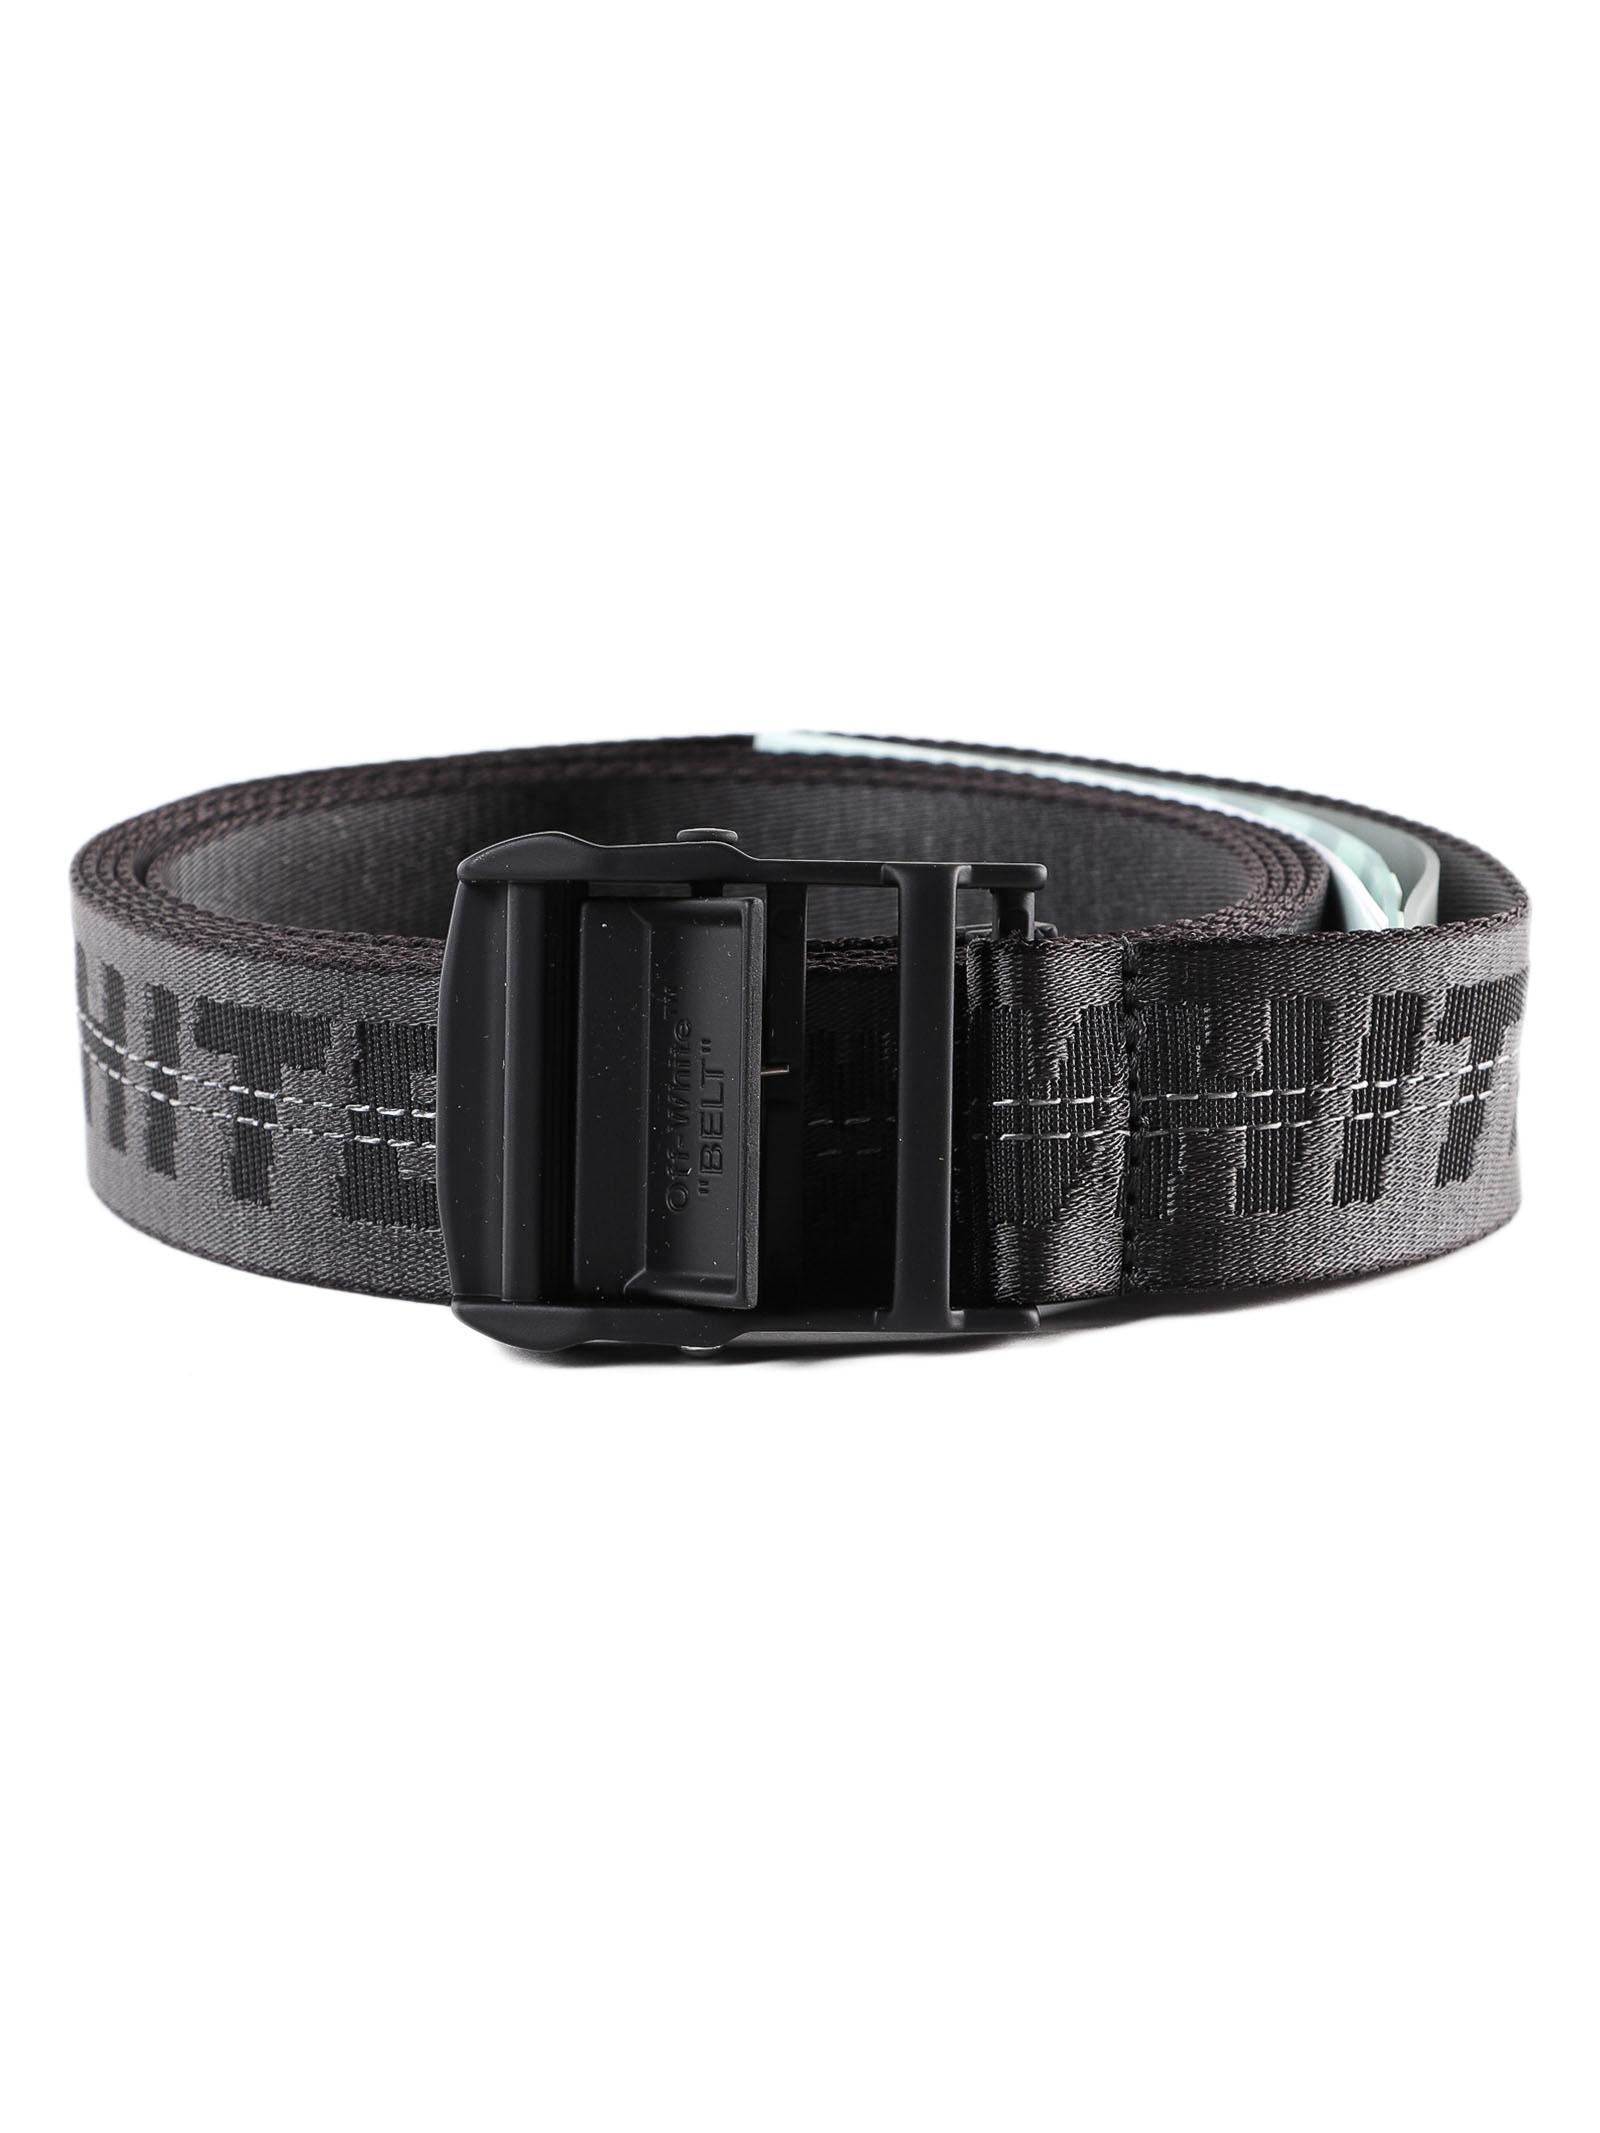 f2b6be2d3fdb Lyst - Off-White C O Virgil Abloh Classic Industrial Belt in Black